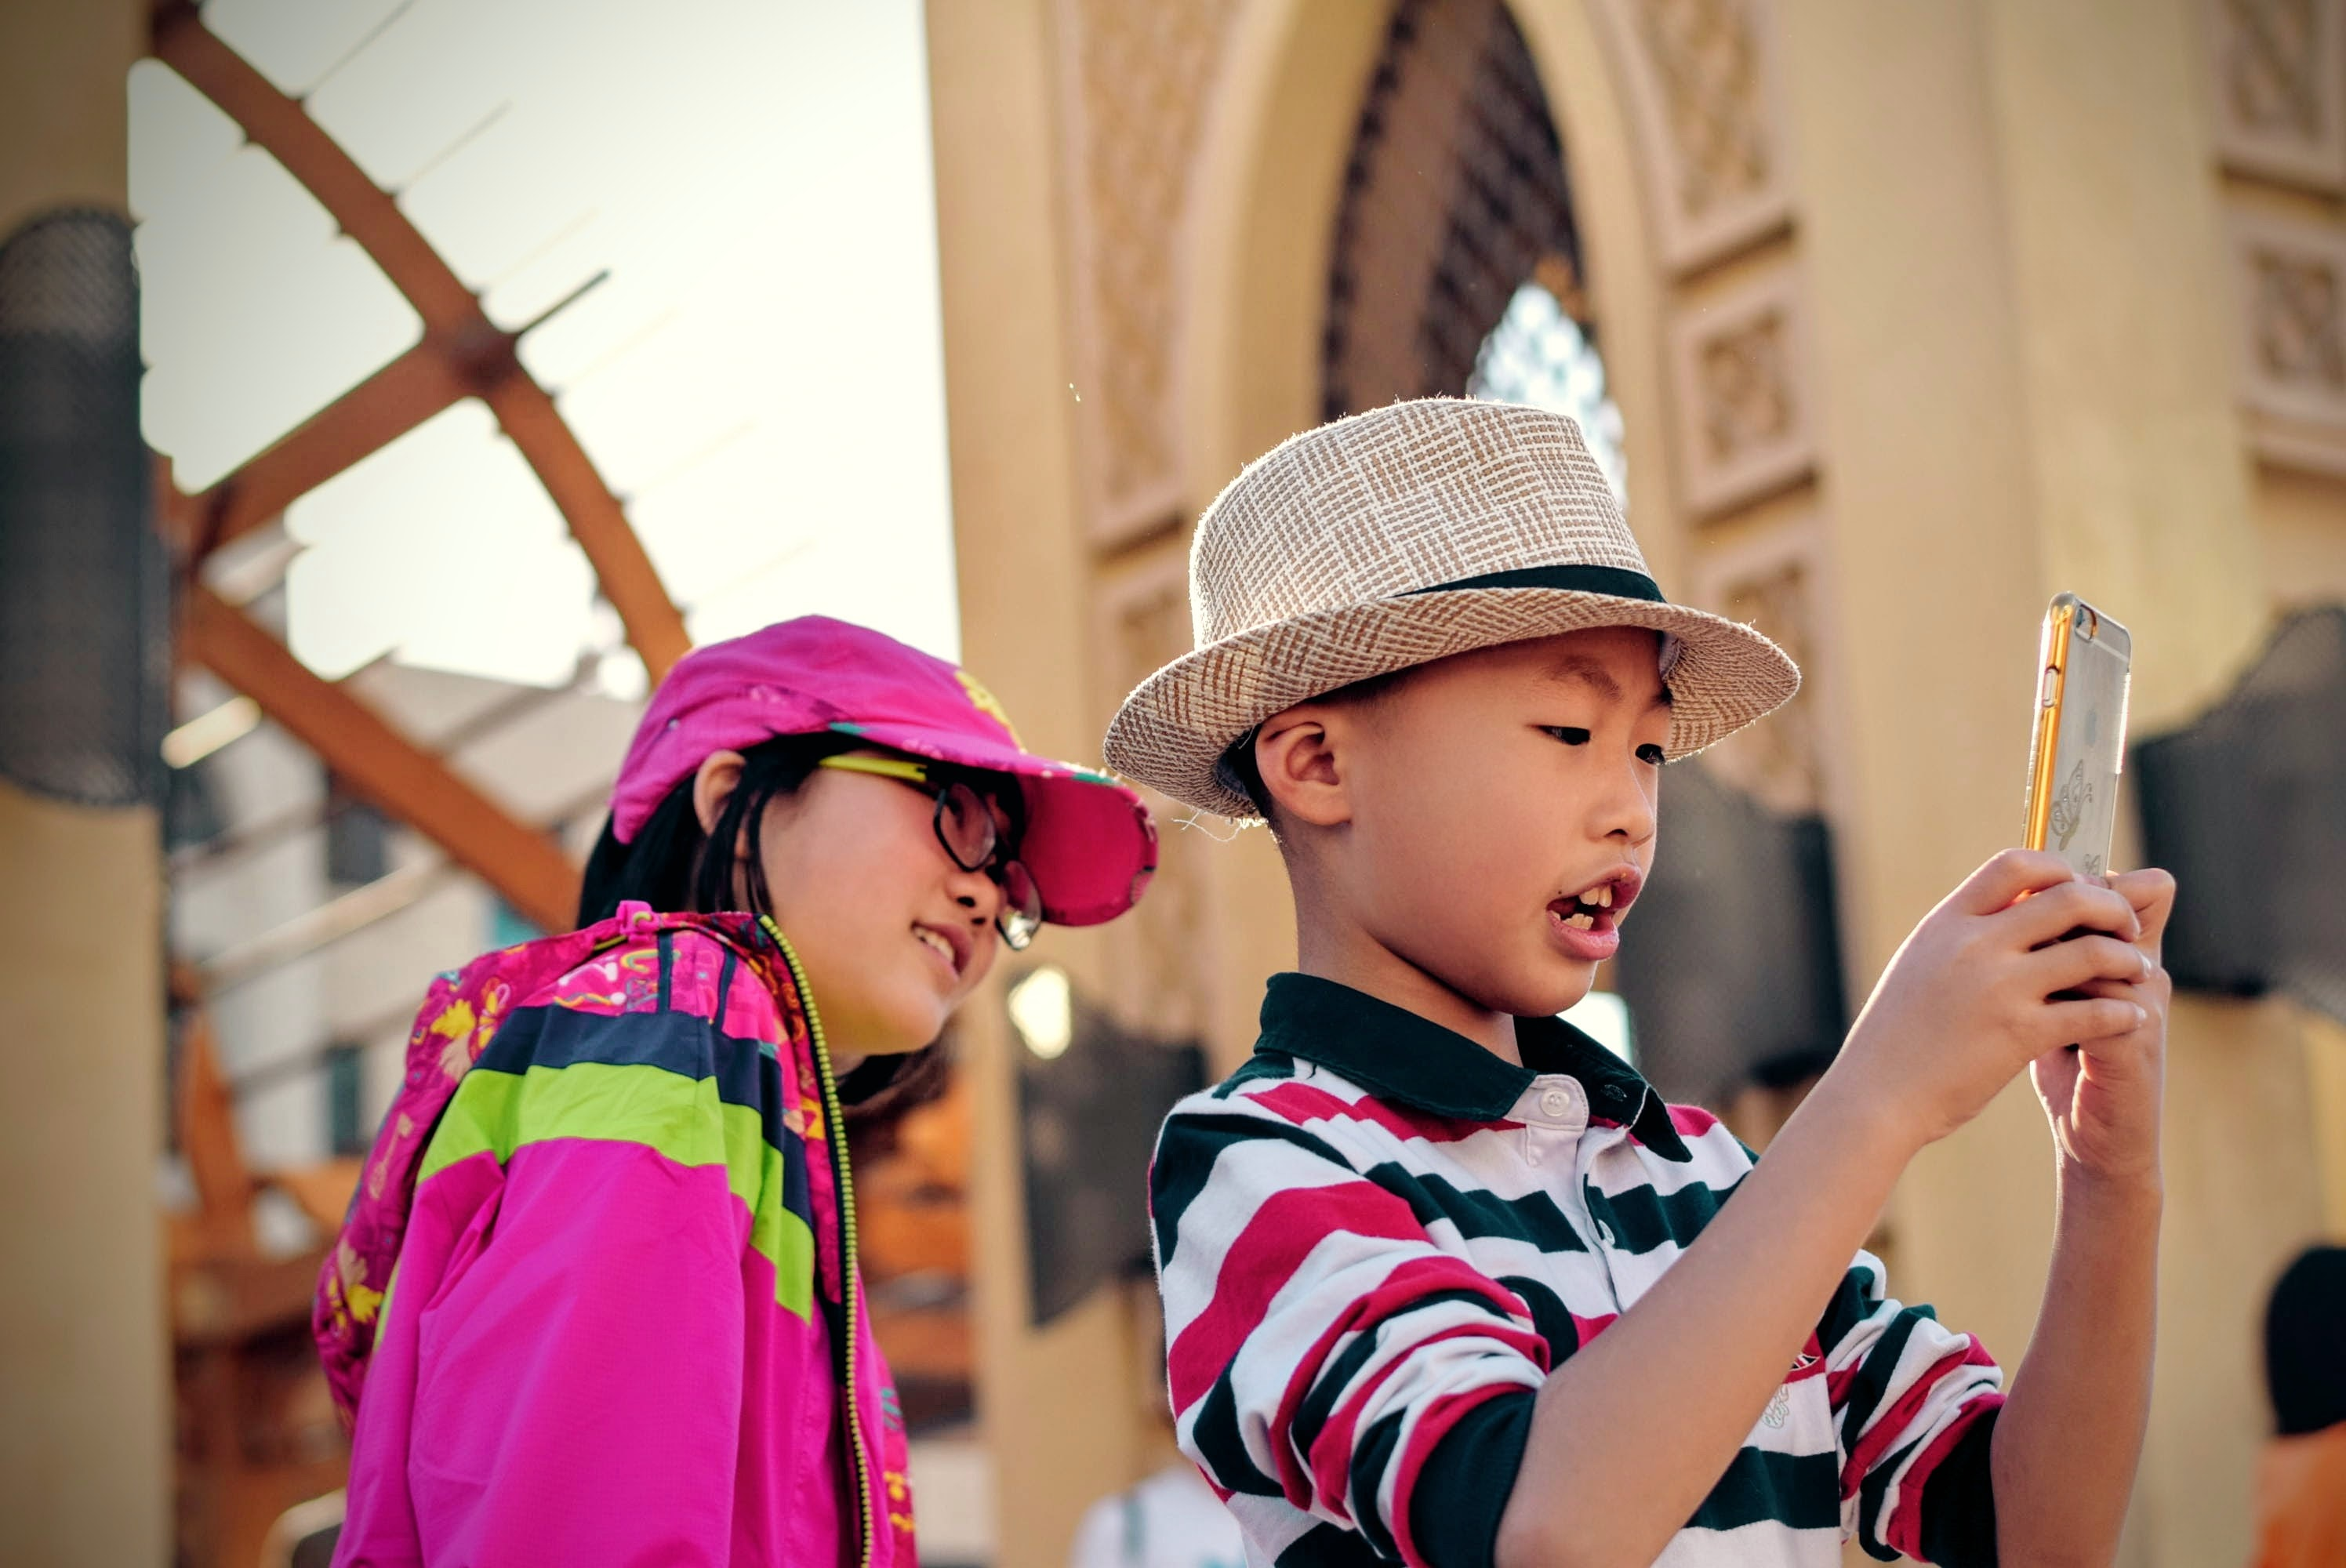 Two Asian children take a selfie on an iPhone Cellphone